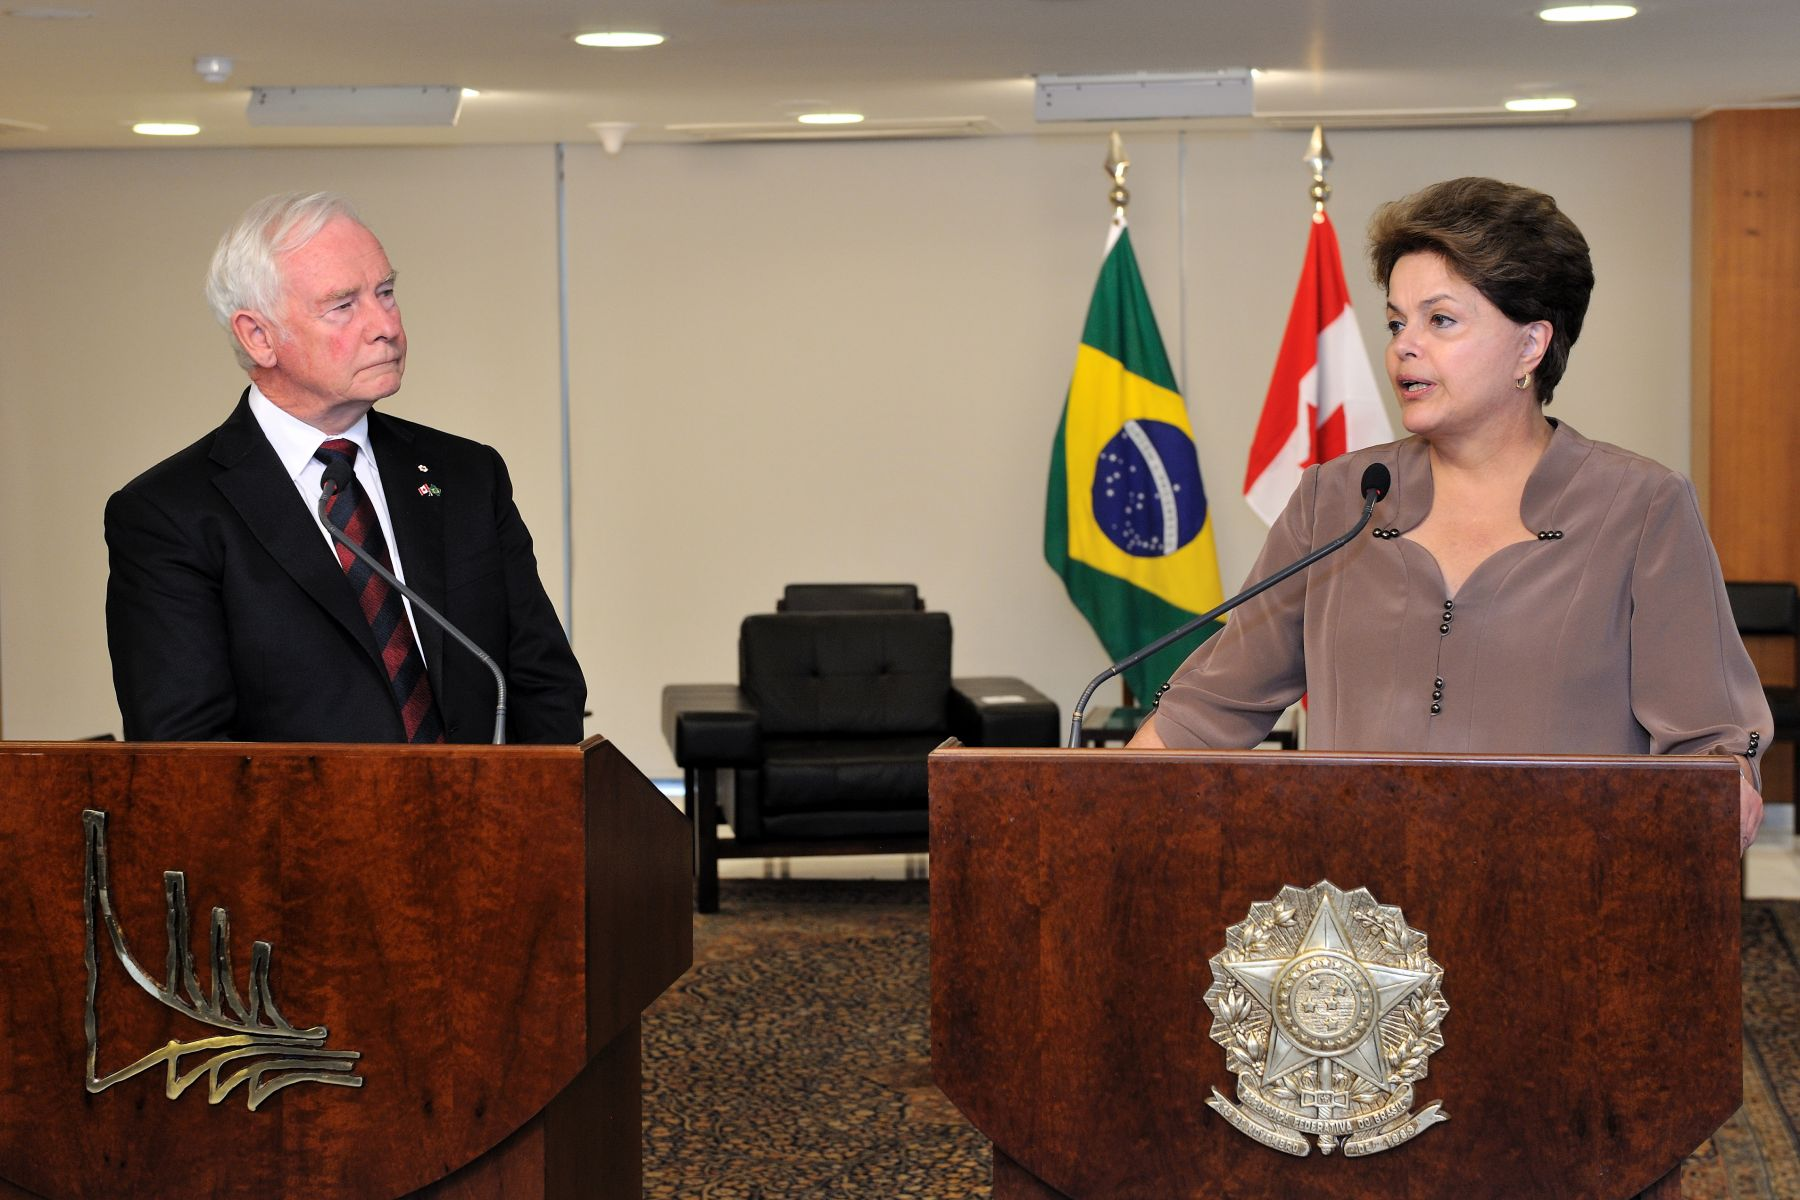 Following their meeting, the Governor General and Her Excellency Dilma Vana Rousseff, President of the Federative Republic of Brazil, spoke to the media.